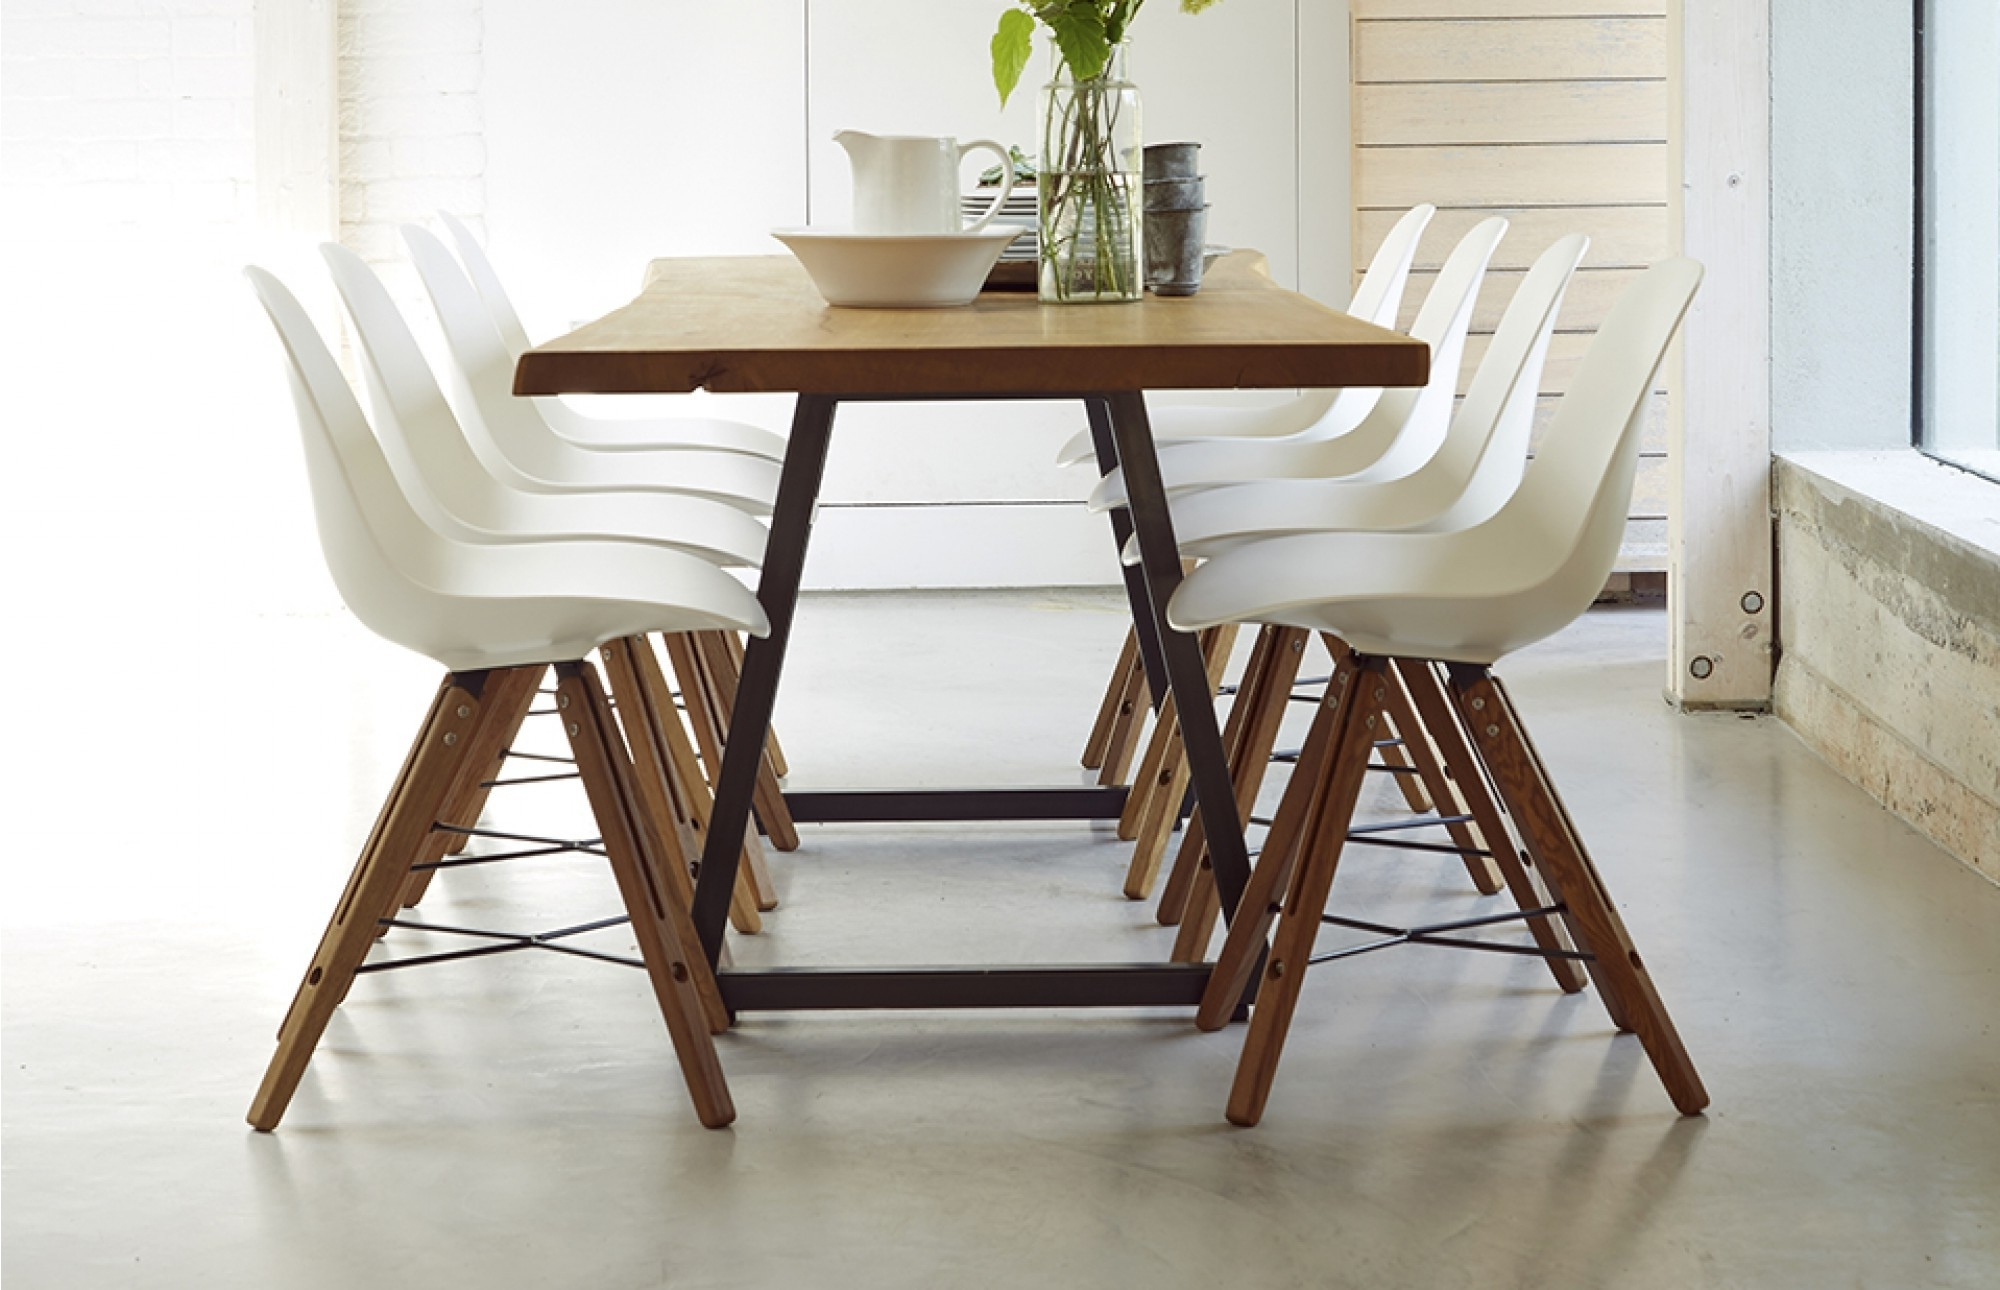 2018 Dining Table Sets 8 Chairs Elegant Luxury Contemporary Tables And 22 inside 8 Chairs Dining Sets